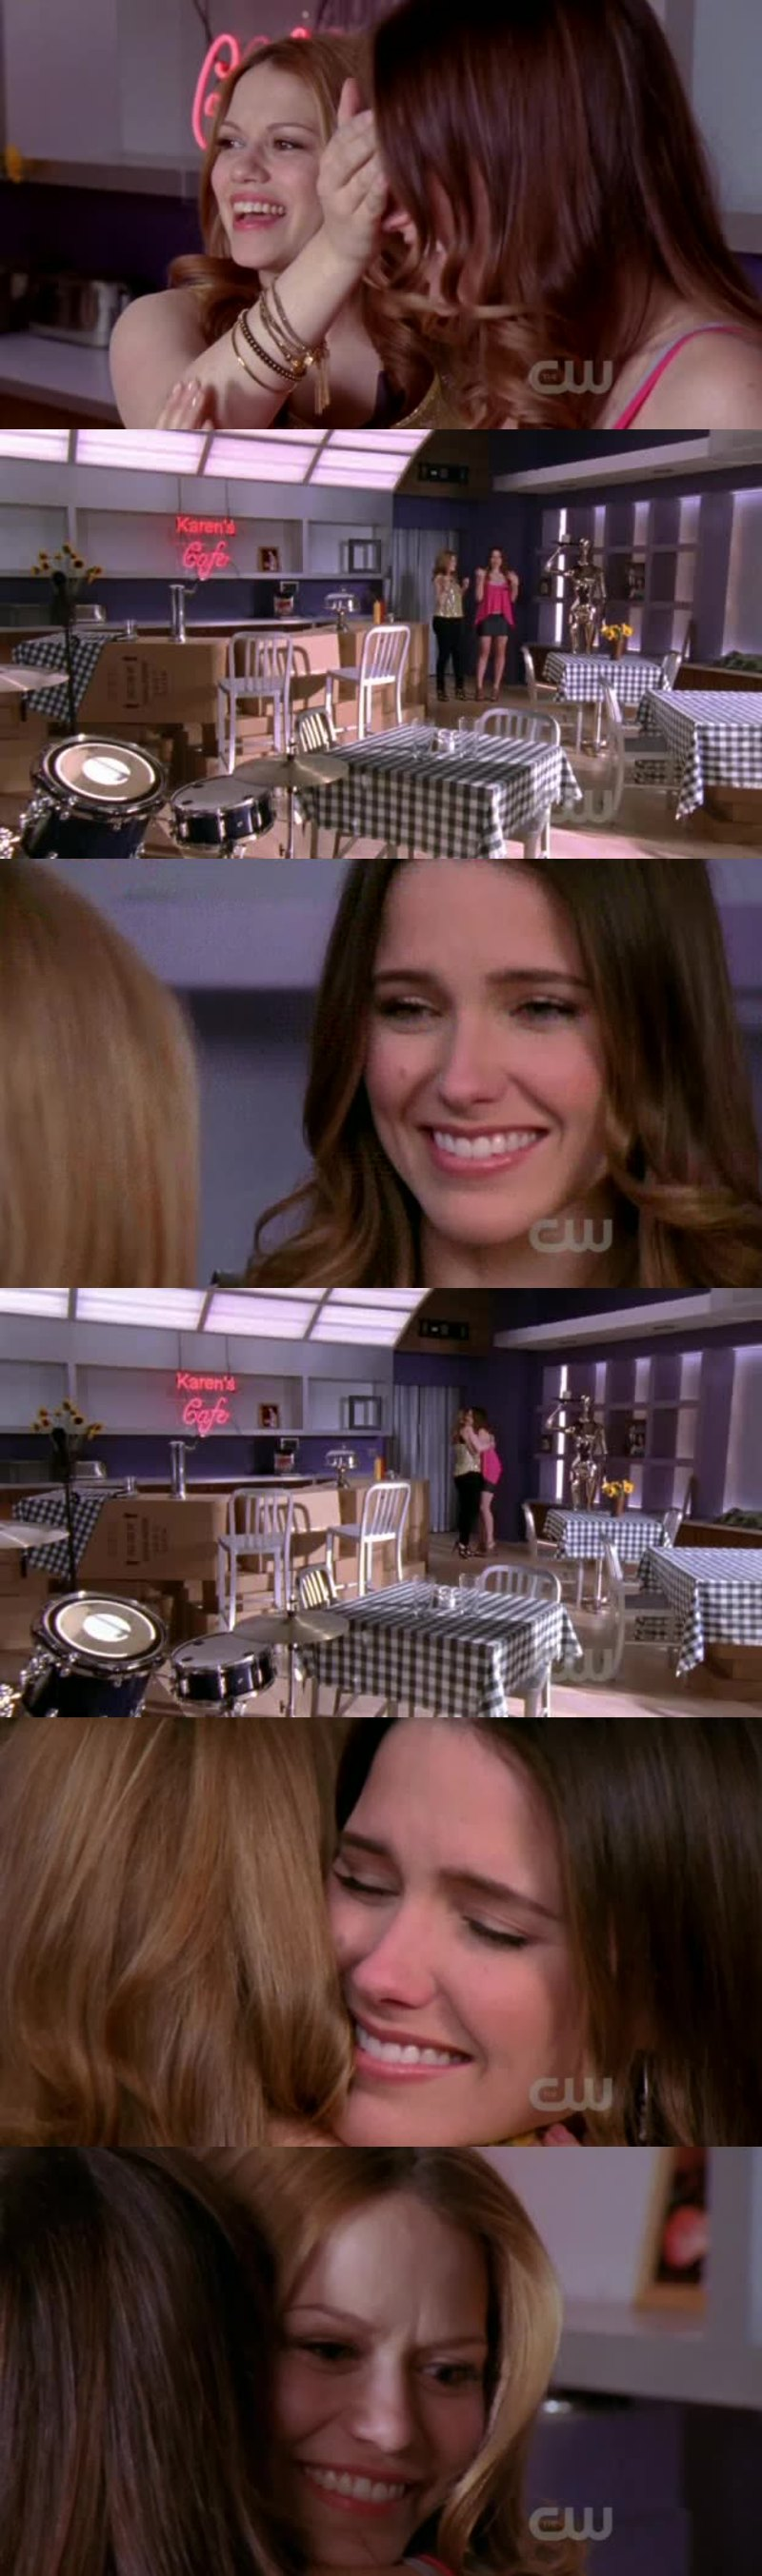 Karen's Café coming back and Haley's and Brooke's friendship, this is just perfect